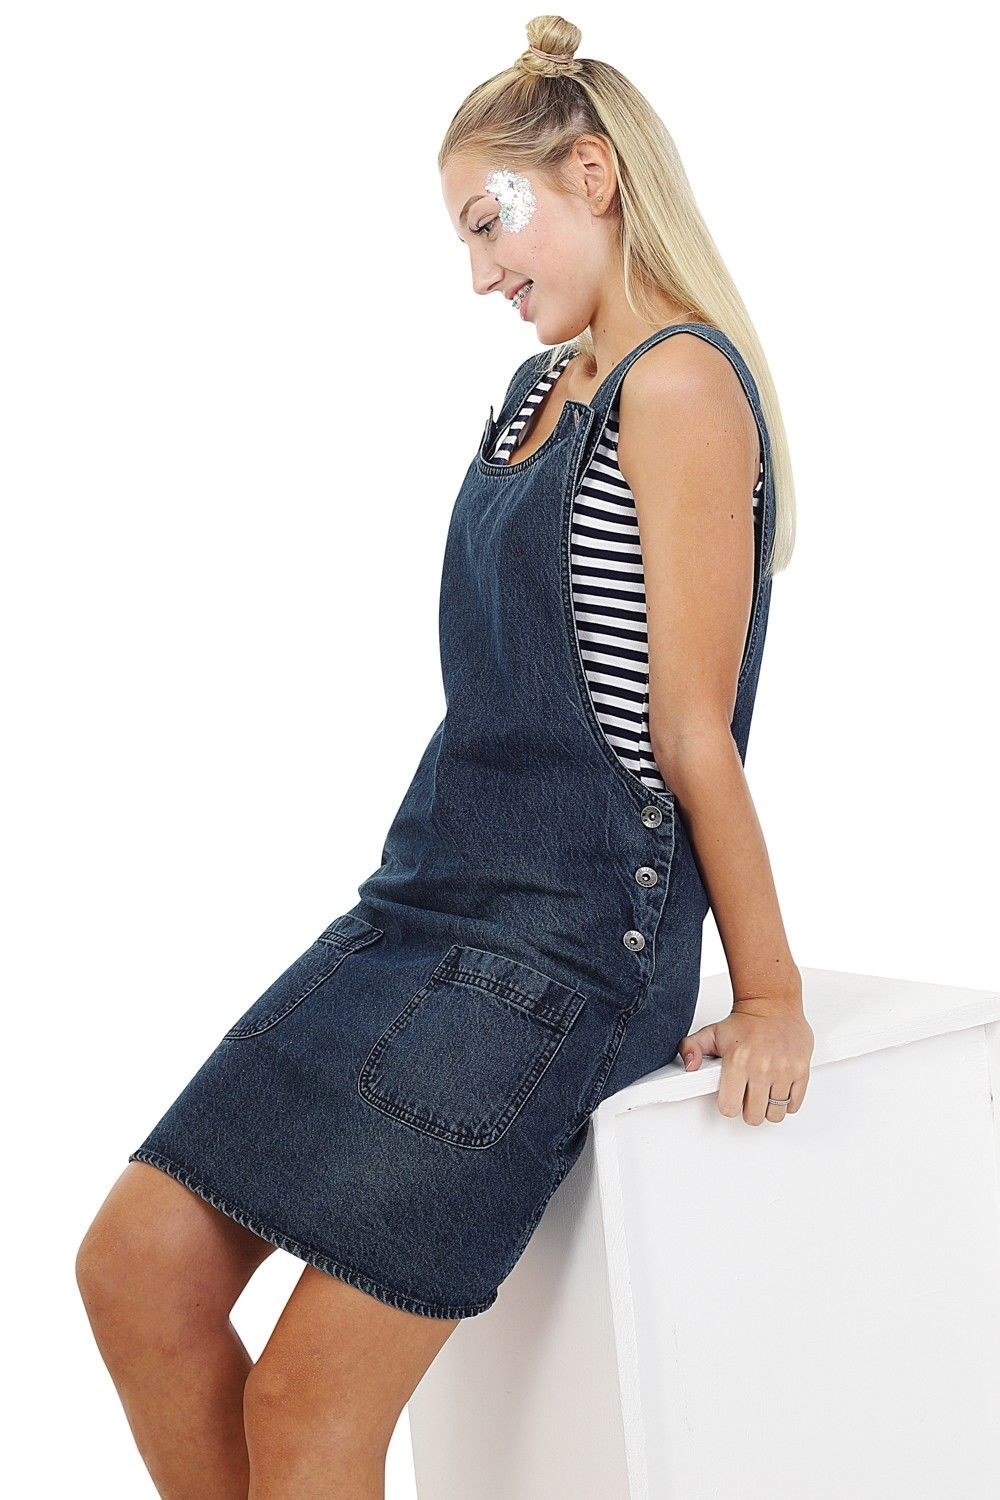 Leaning against box showing elegant, 3-button side fastening and front pockets of sleeveless jean dress.